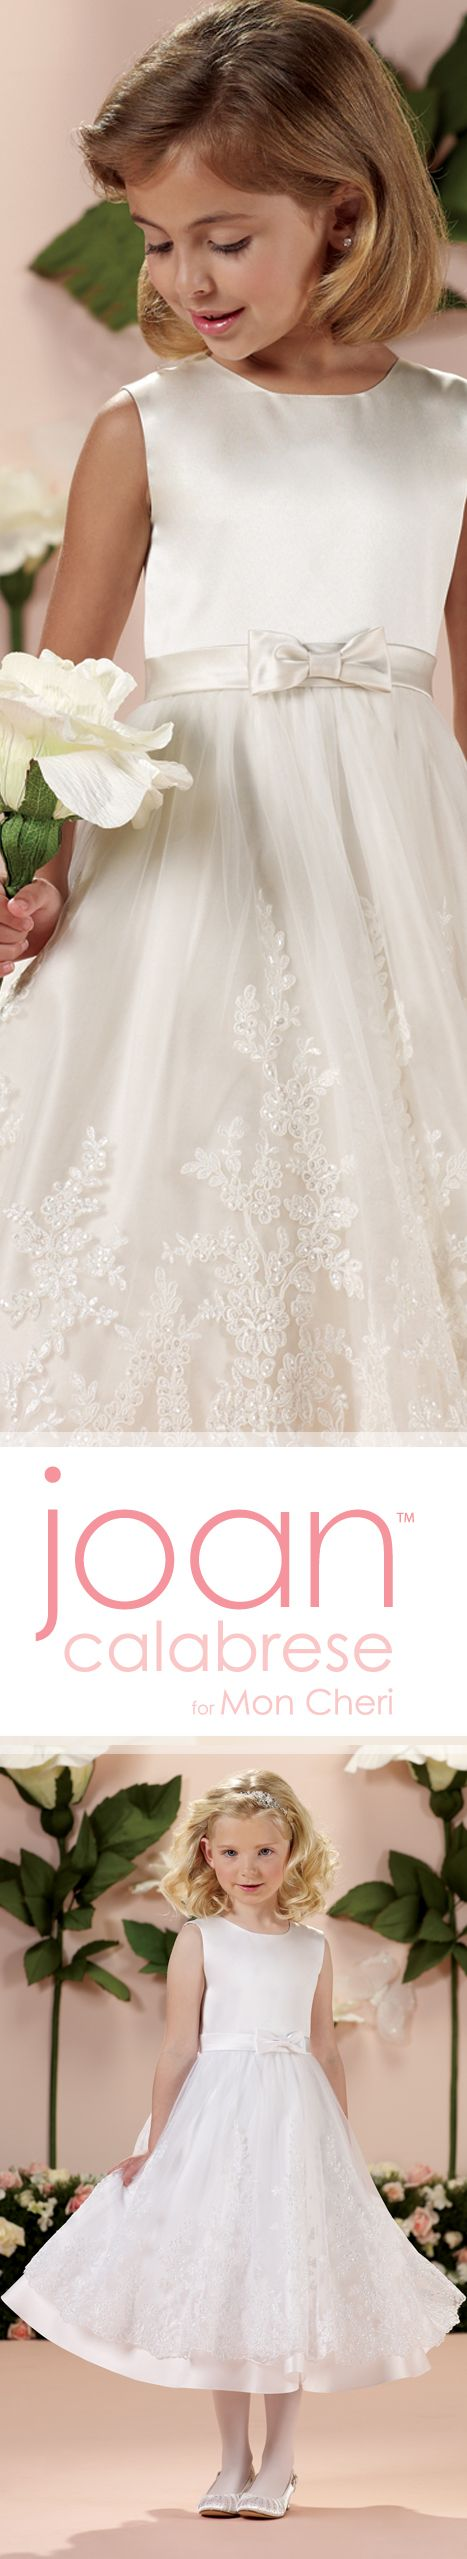 Style No. 114341 ~ Sleeveless satin and tulle tea-length A-line dress with jewel neckline, satin set-in waistband with center front bow, covered buttons down back bodice, tulle overlay skirt with wide lace appliqué and satin hemline, perfect as a flower girl dress or First Holy Communion dress.